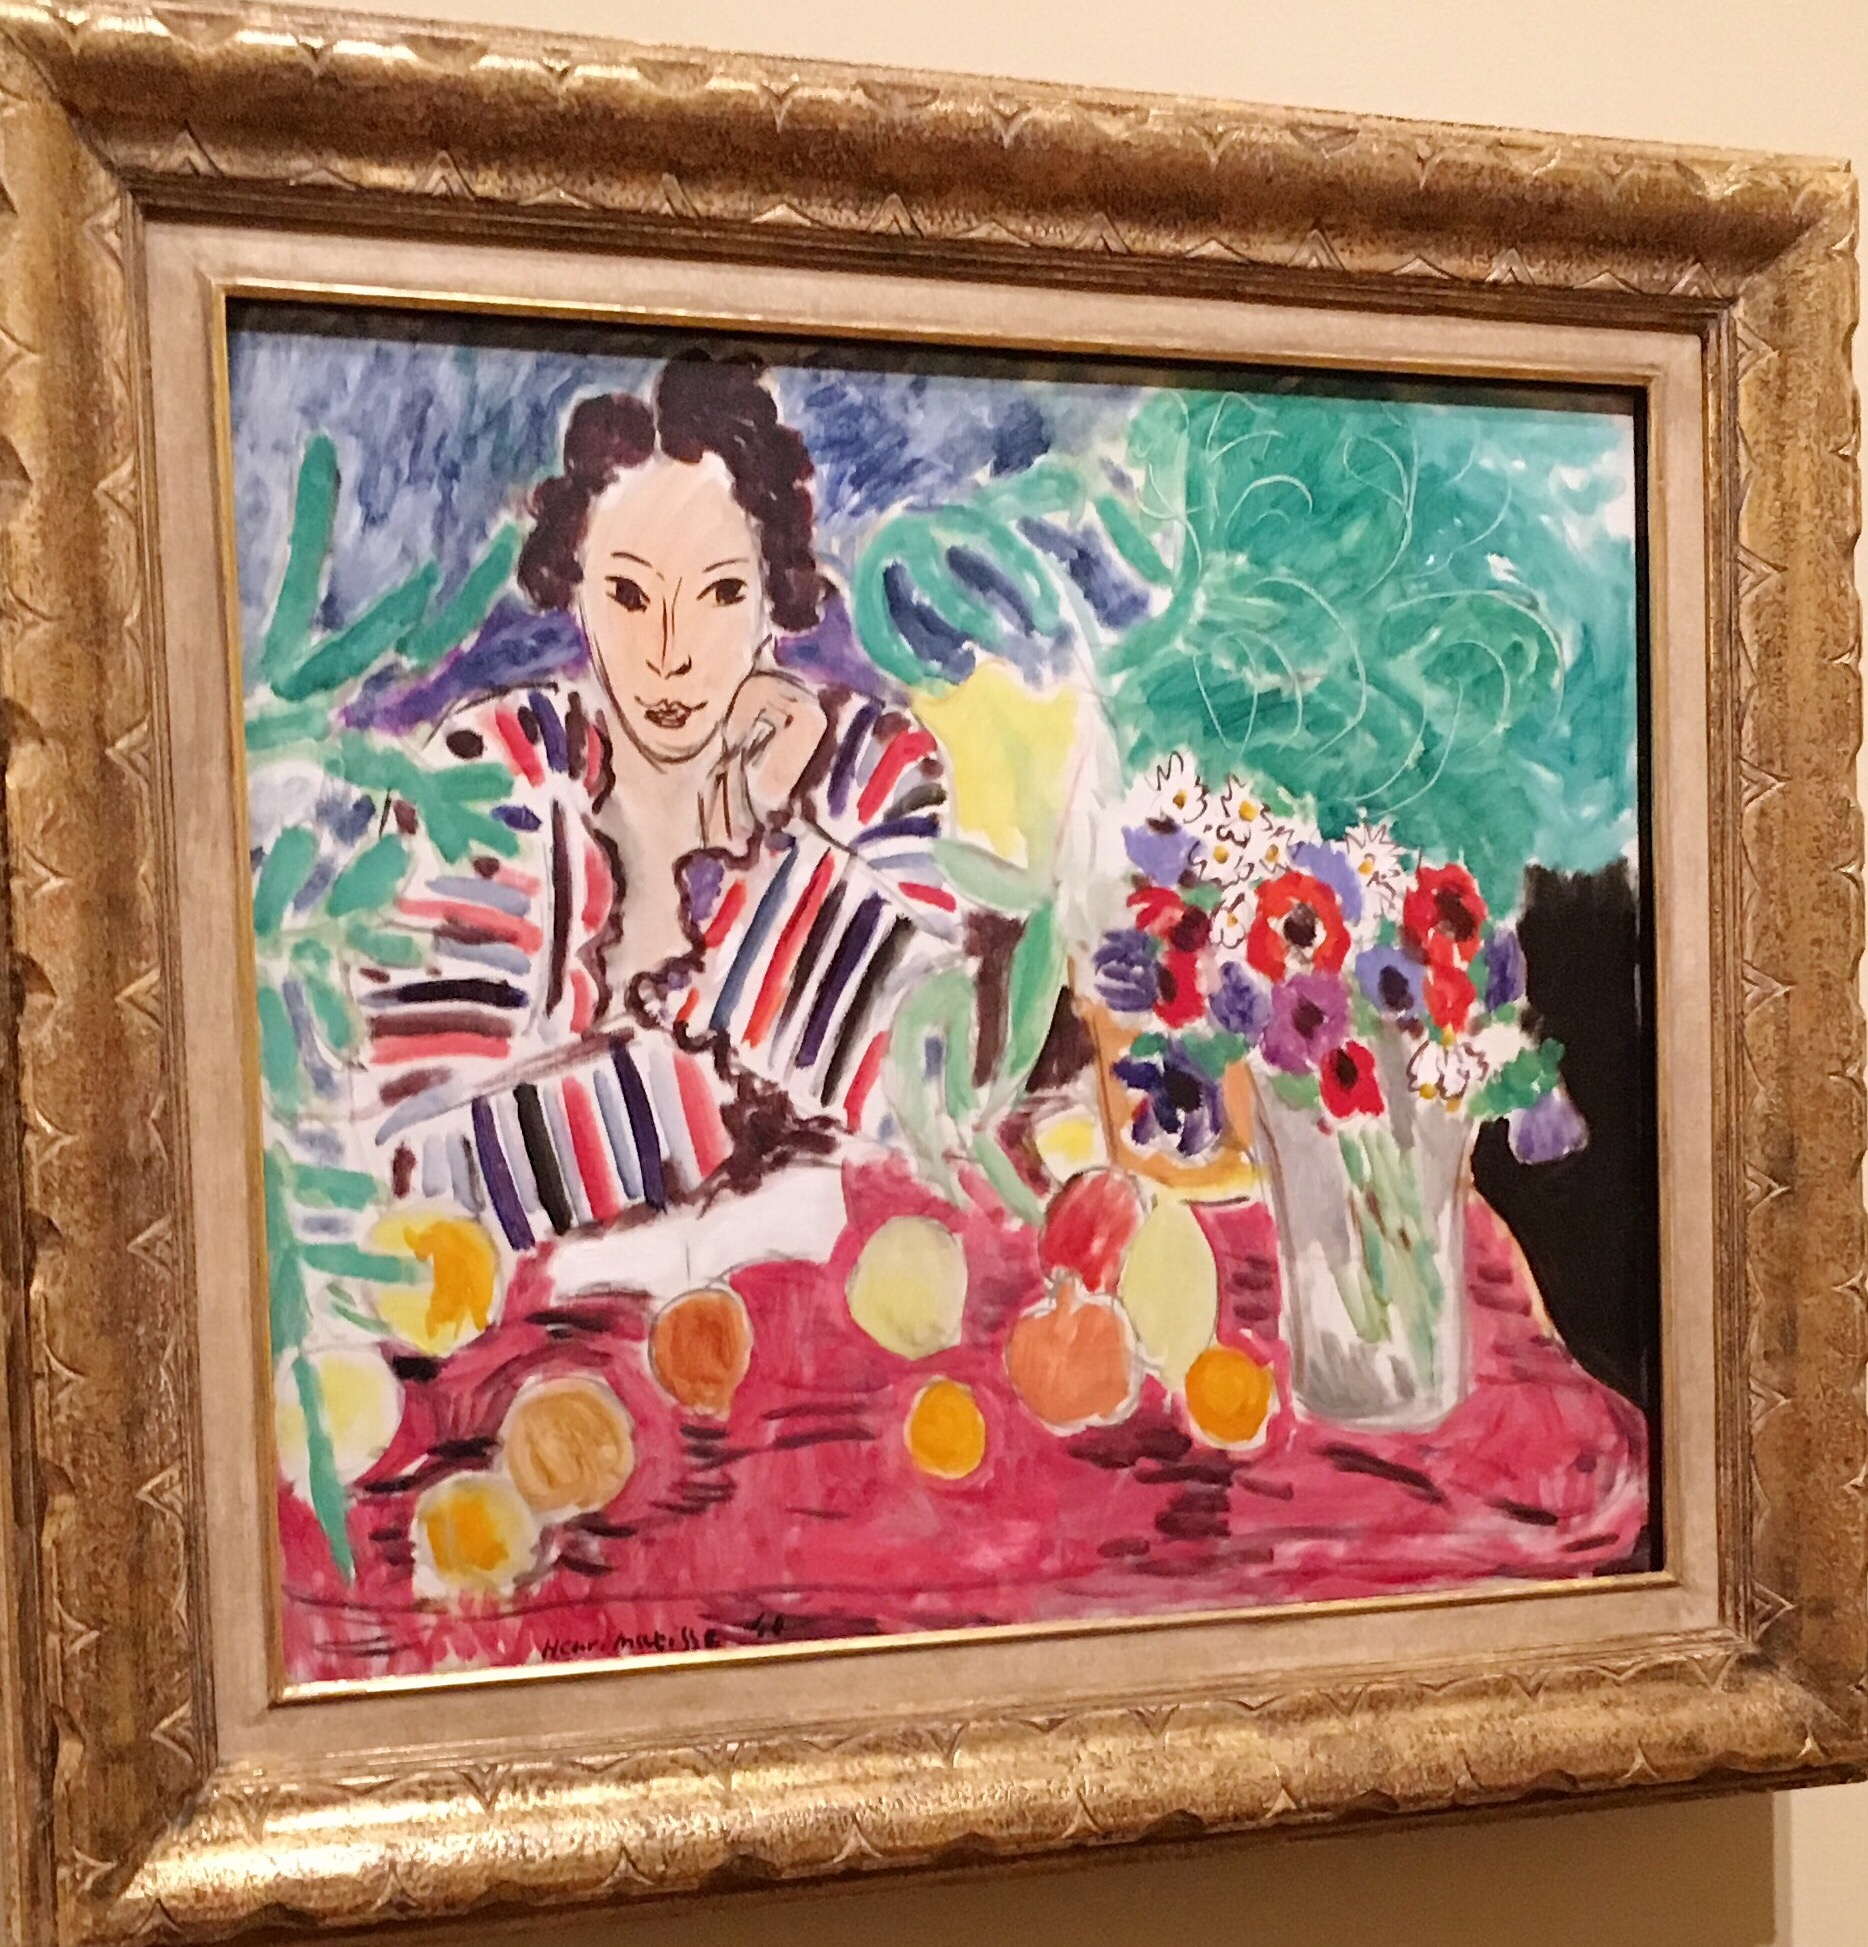 Matisse-Striped Robe, Fruit & Anemones